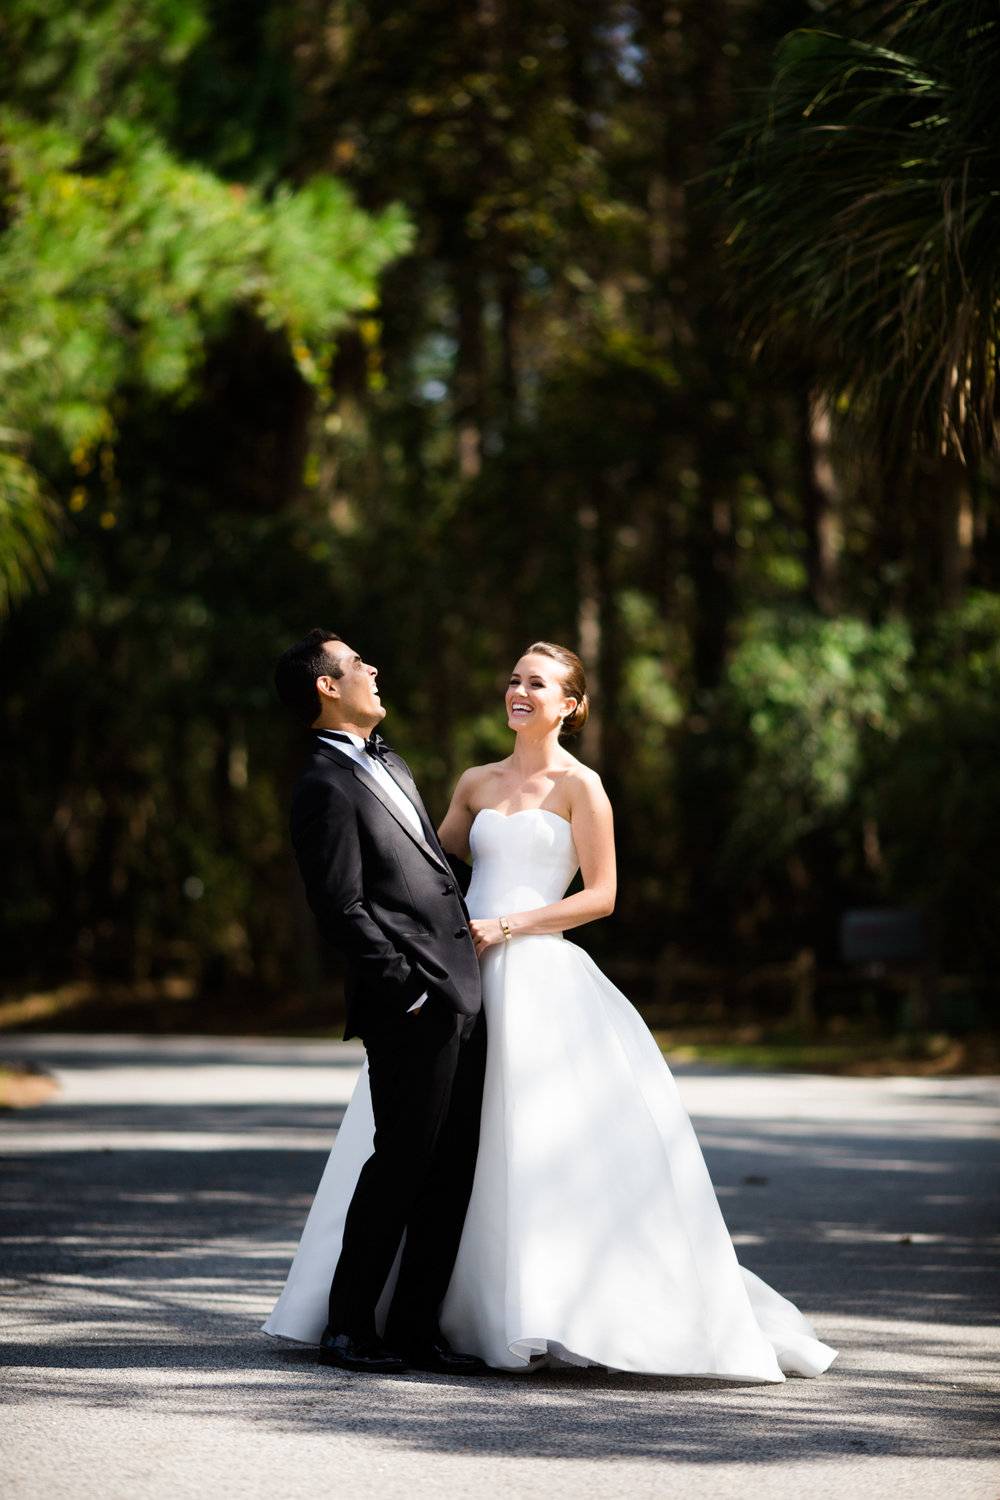 Portrait of bride and groom on wedding day in Kiawah, South Carolina